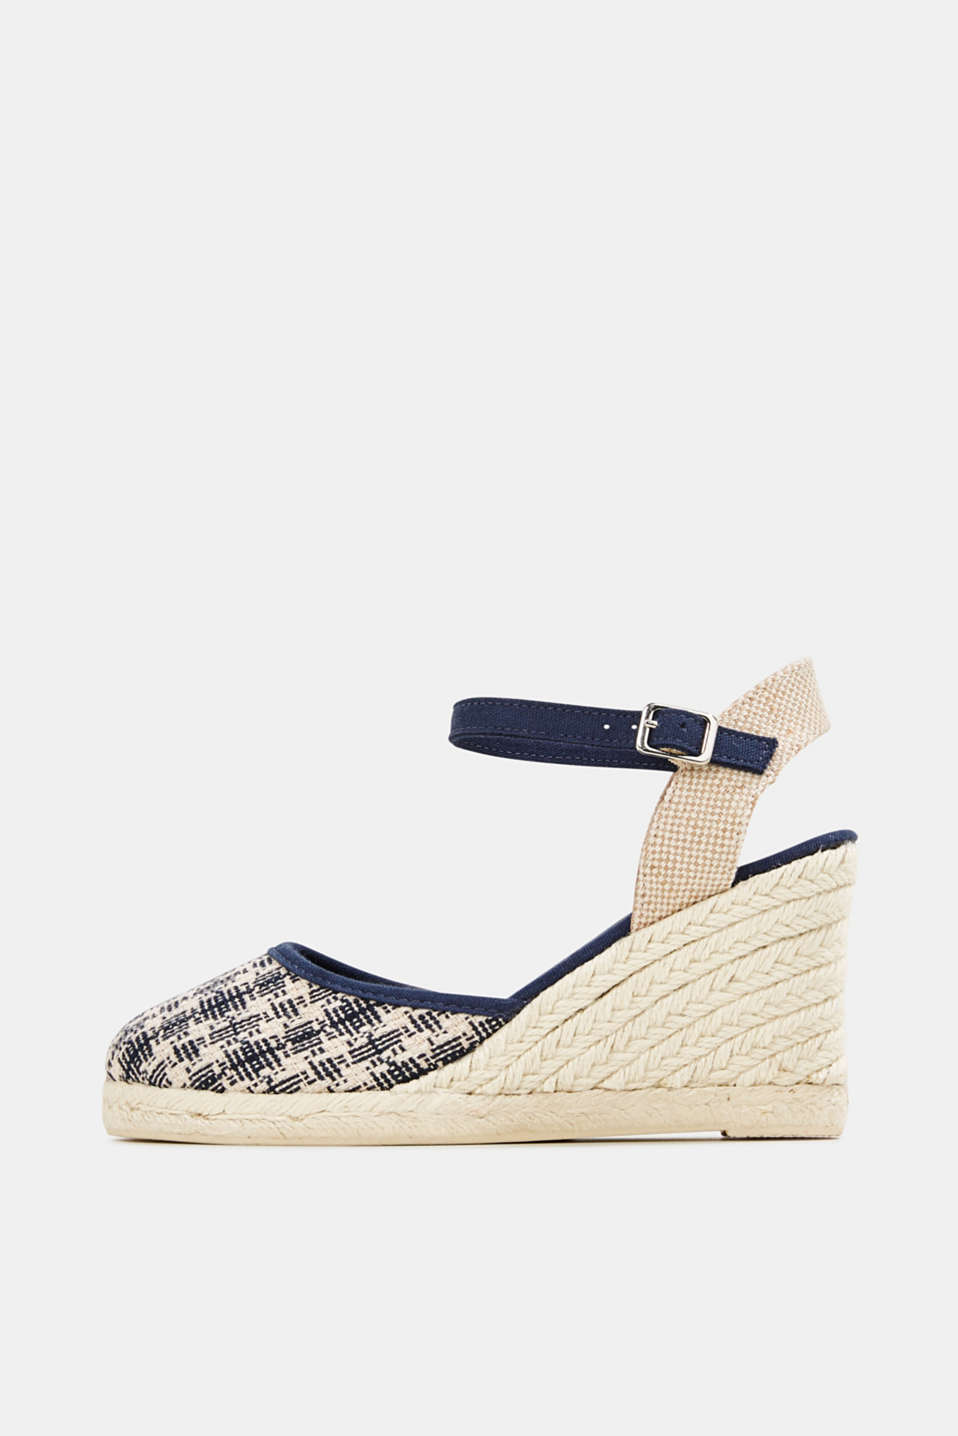 Espadrille sandals with a wedge heel, NAVY, detail image number 0